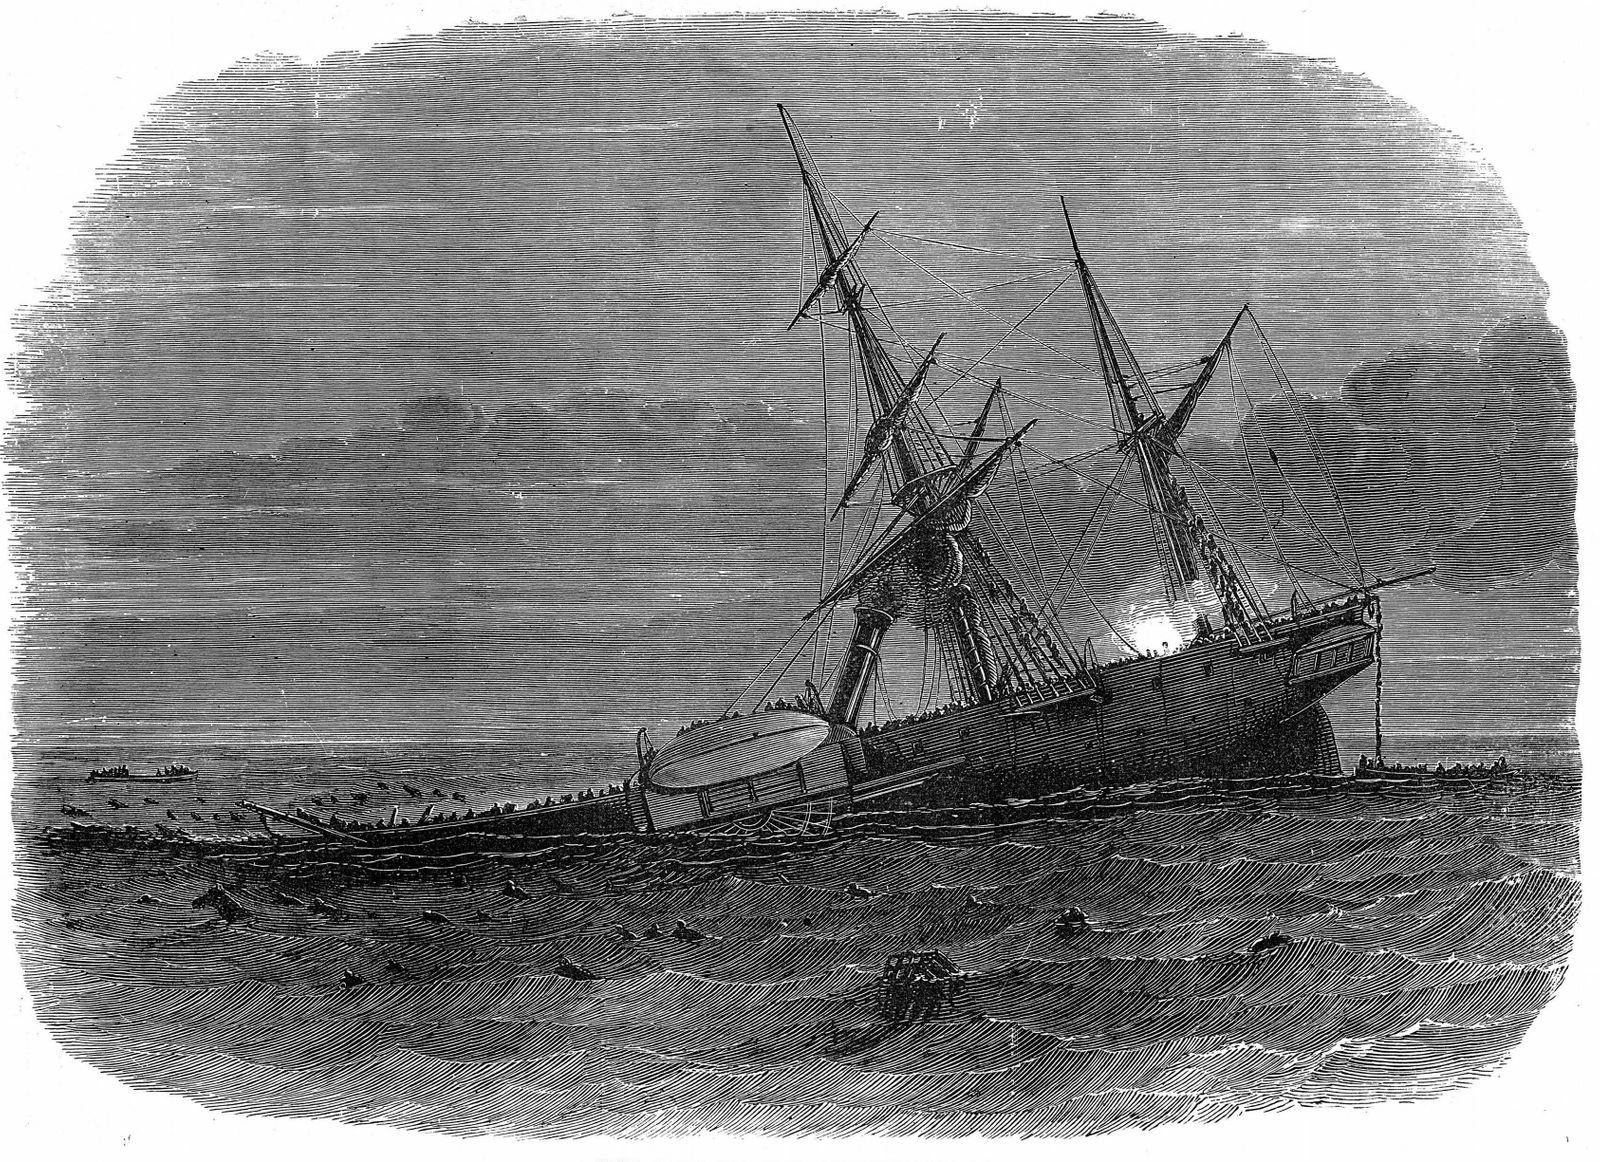 Loss of iron paddle steamer troop ship Birkenhead Loss of iron paddle steamer troop ship Birkenhead